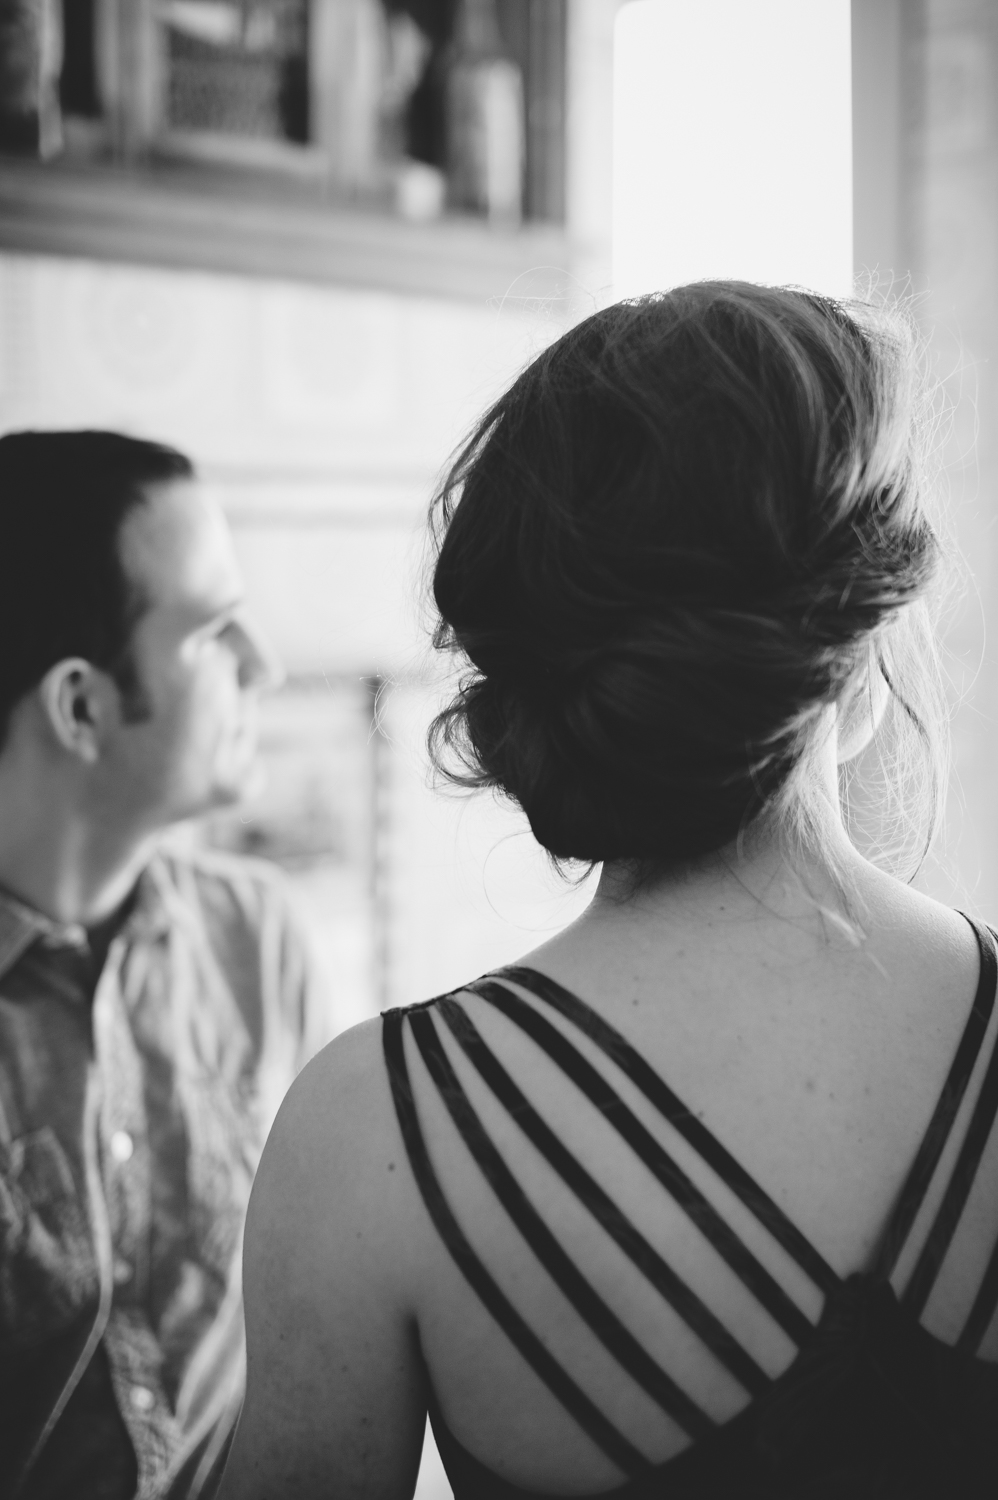 BARR_MANSION_ENGAGEMENT_SHOOT_BY_MATTHEW_MOORE_PHOTOGRAPHY_00059-2.jpg